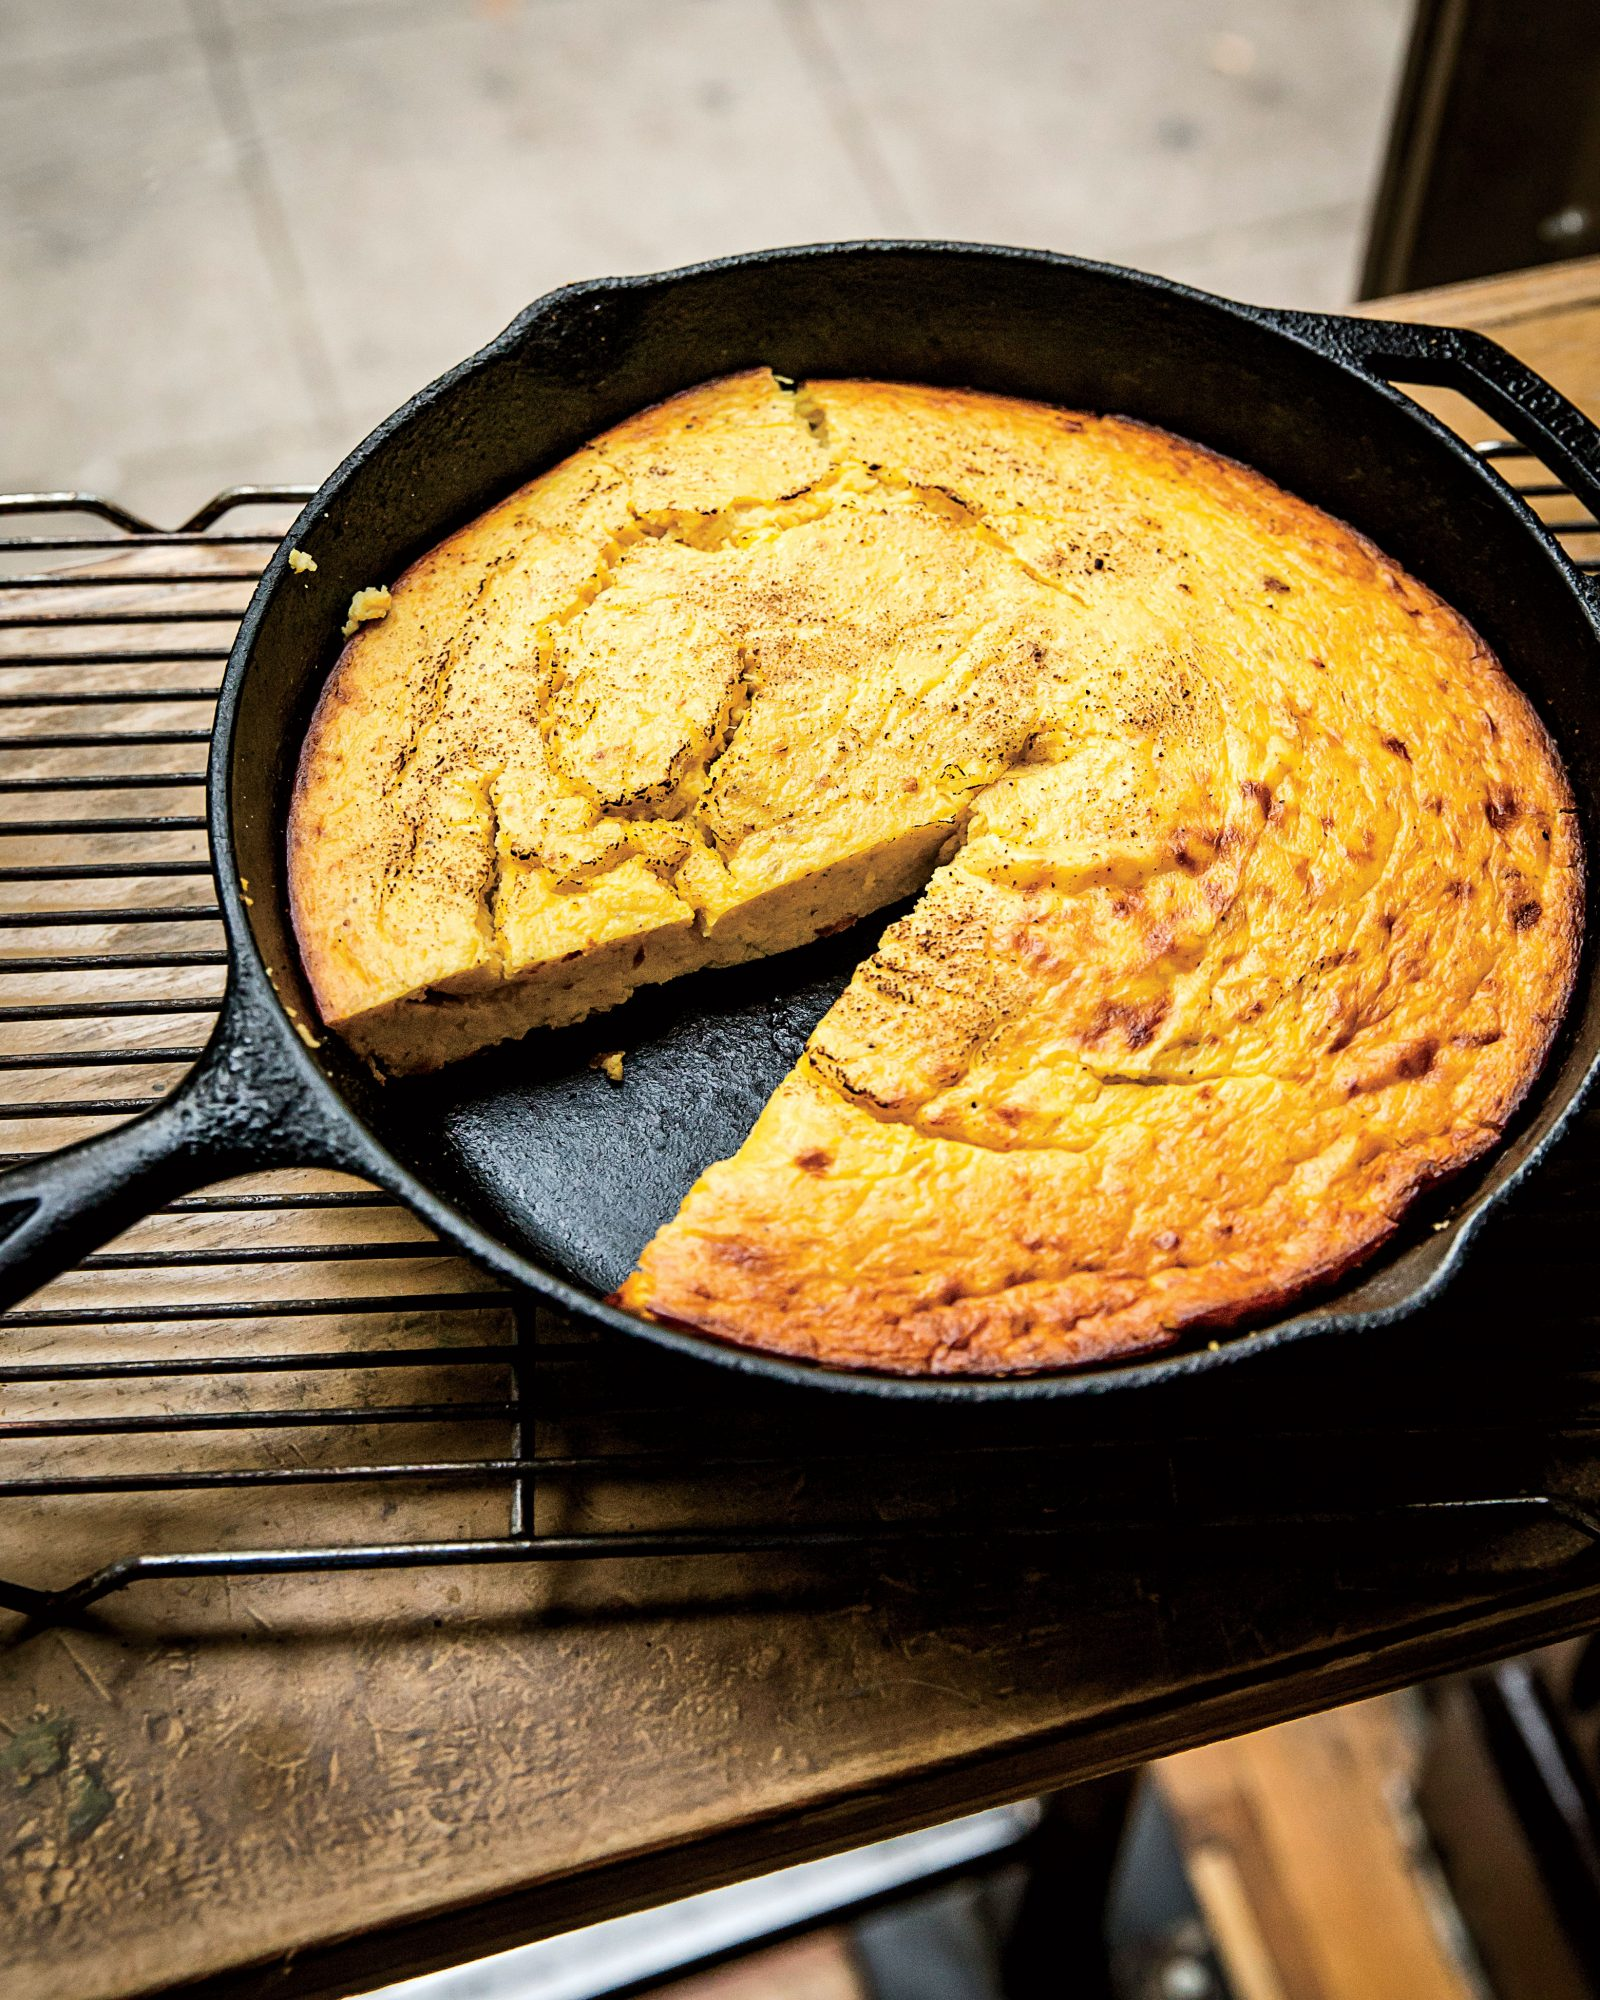 Christensen's Buttermilk Spoon Bread with Spaghetti Squash